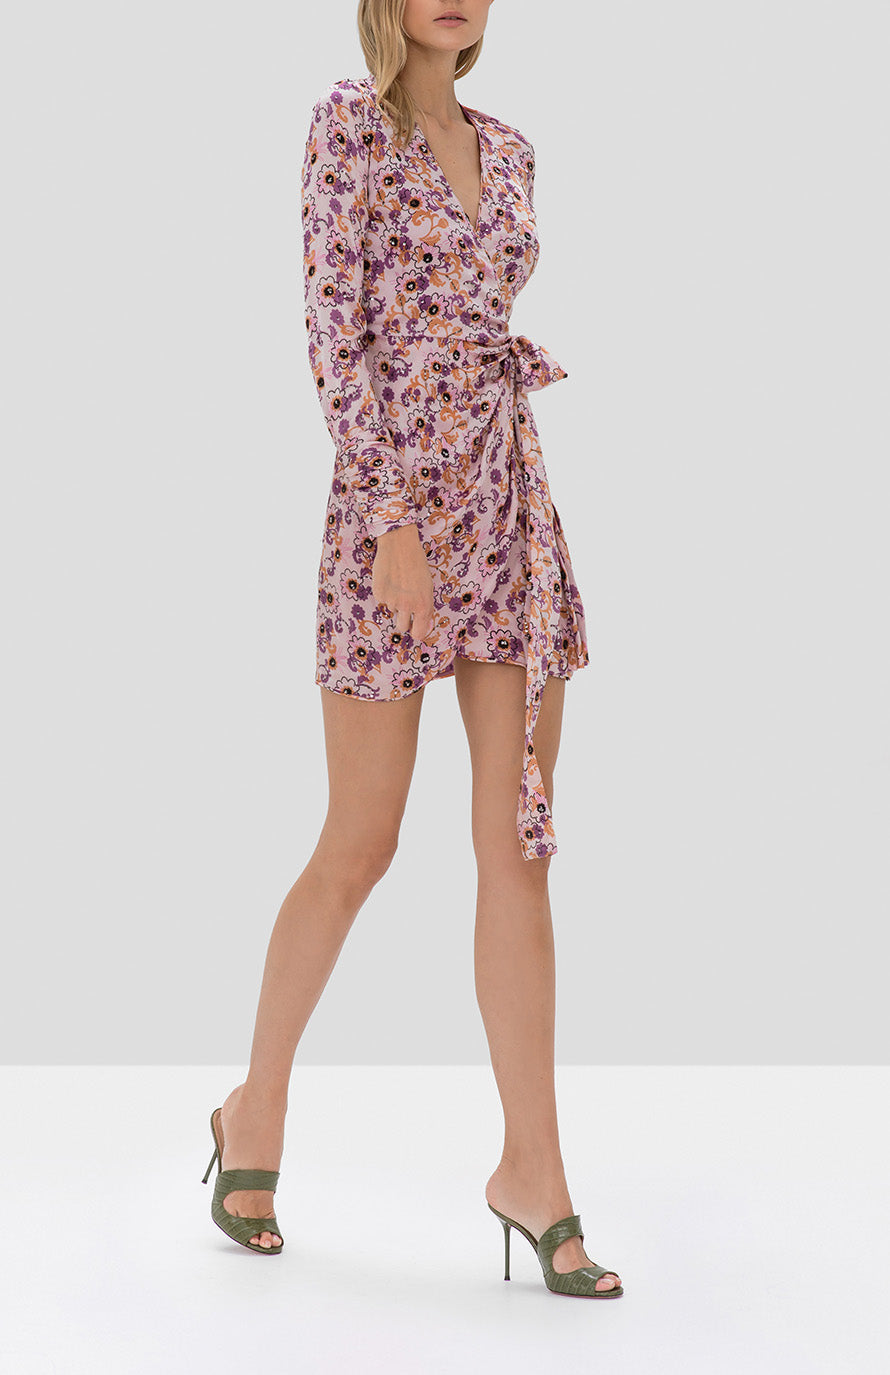 Alexis Kari Dress in Lilac Beaded Floral - Rear View